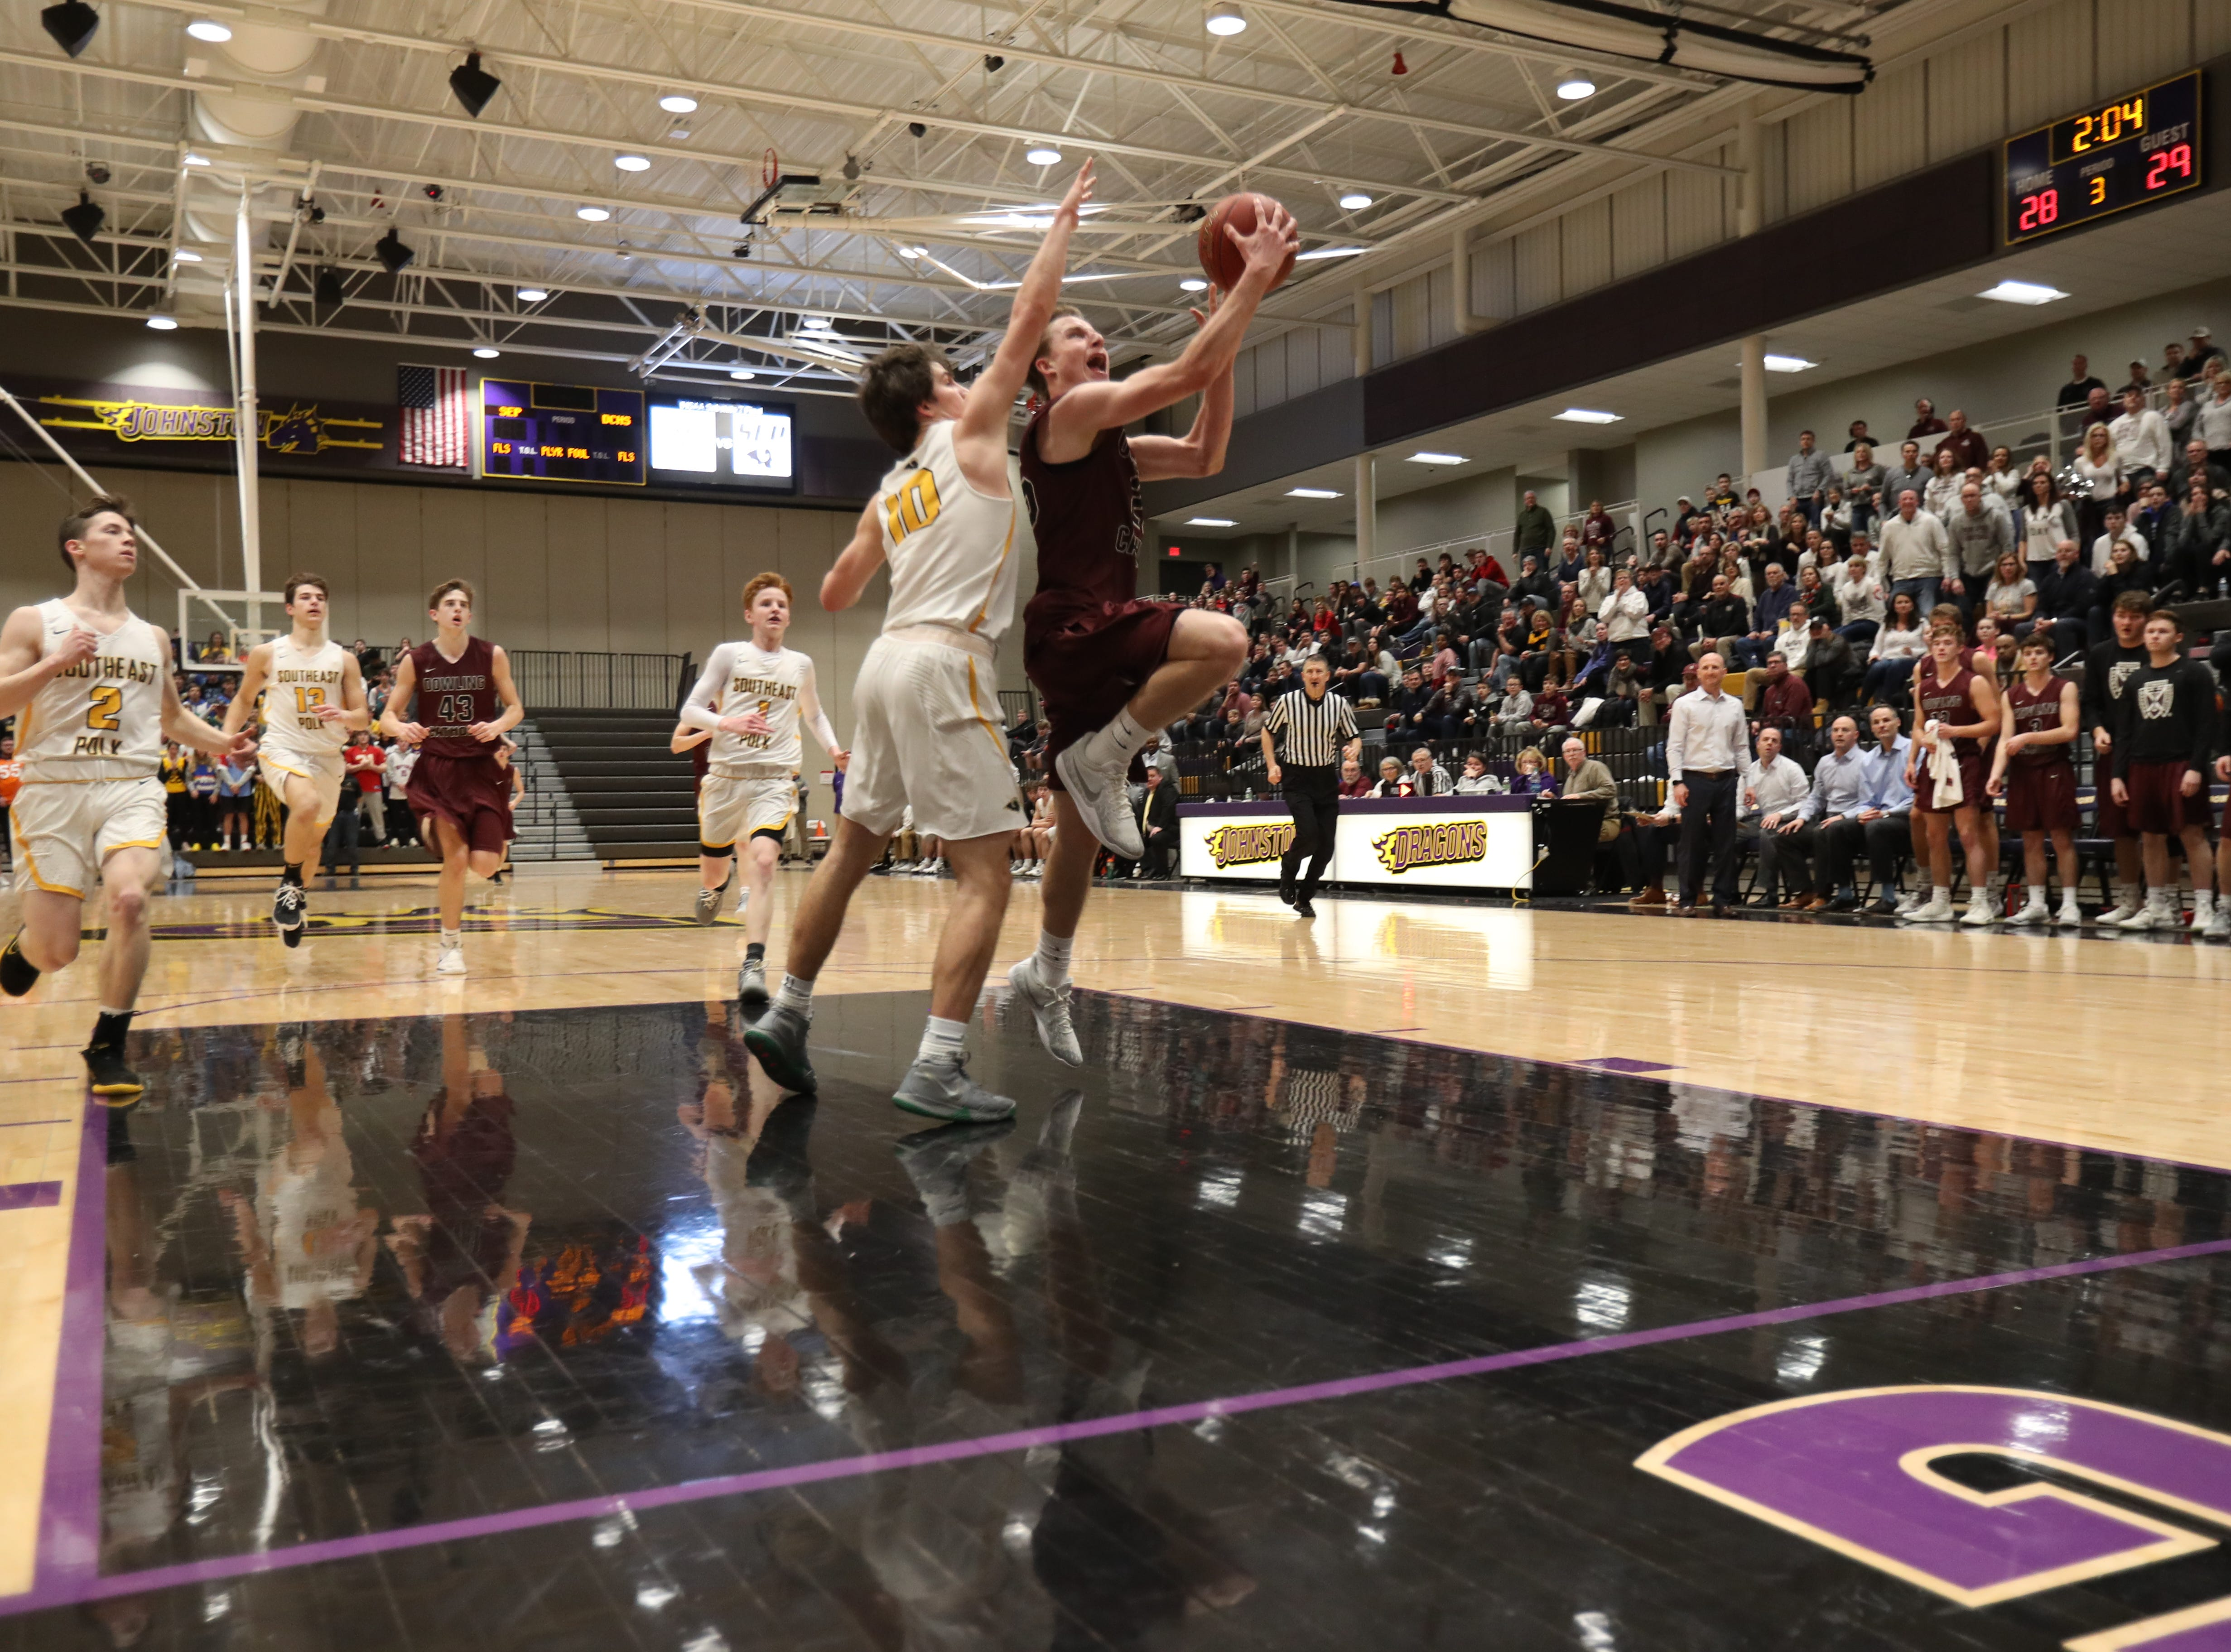 Dowling Catholic's Matt Stilwill (25) drives past Southeast Polk's Daniel Hackbarth (10) during their game at Johnston High School in Johnston, Iowa, on Tuesday, Feb. 26, 2019. Dowling won the game 44-40 to advance to state.